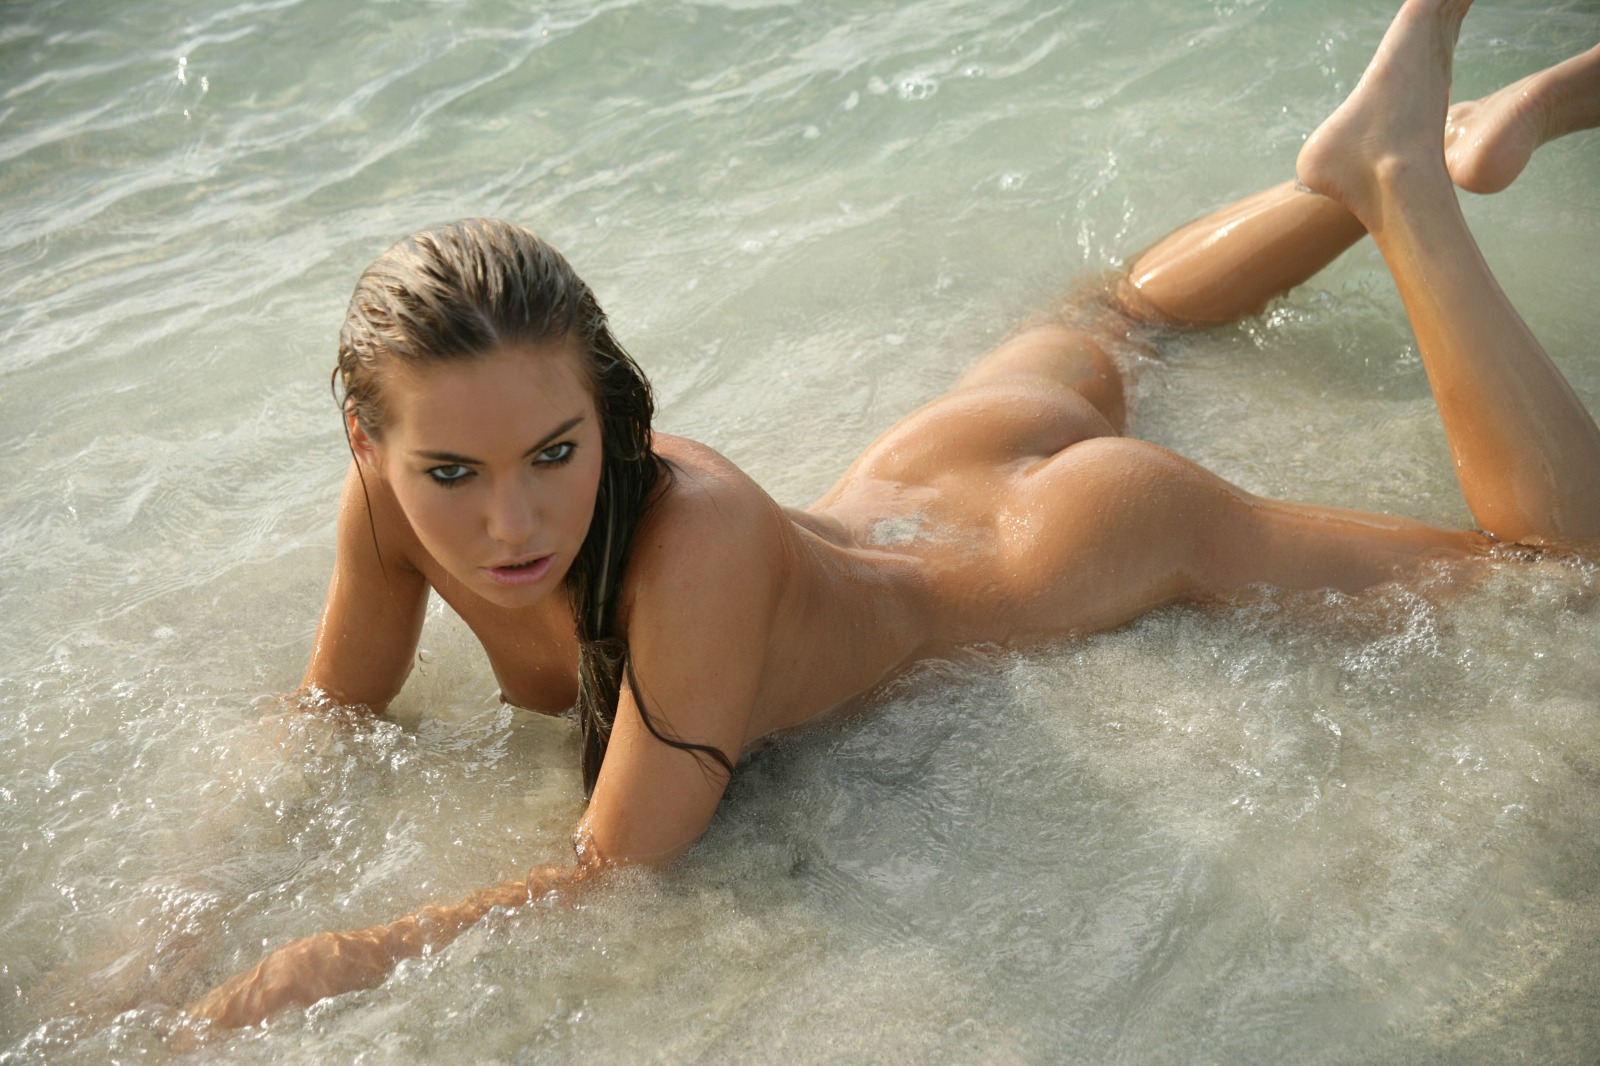 Naked Babe Taking A Swim In The Sea